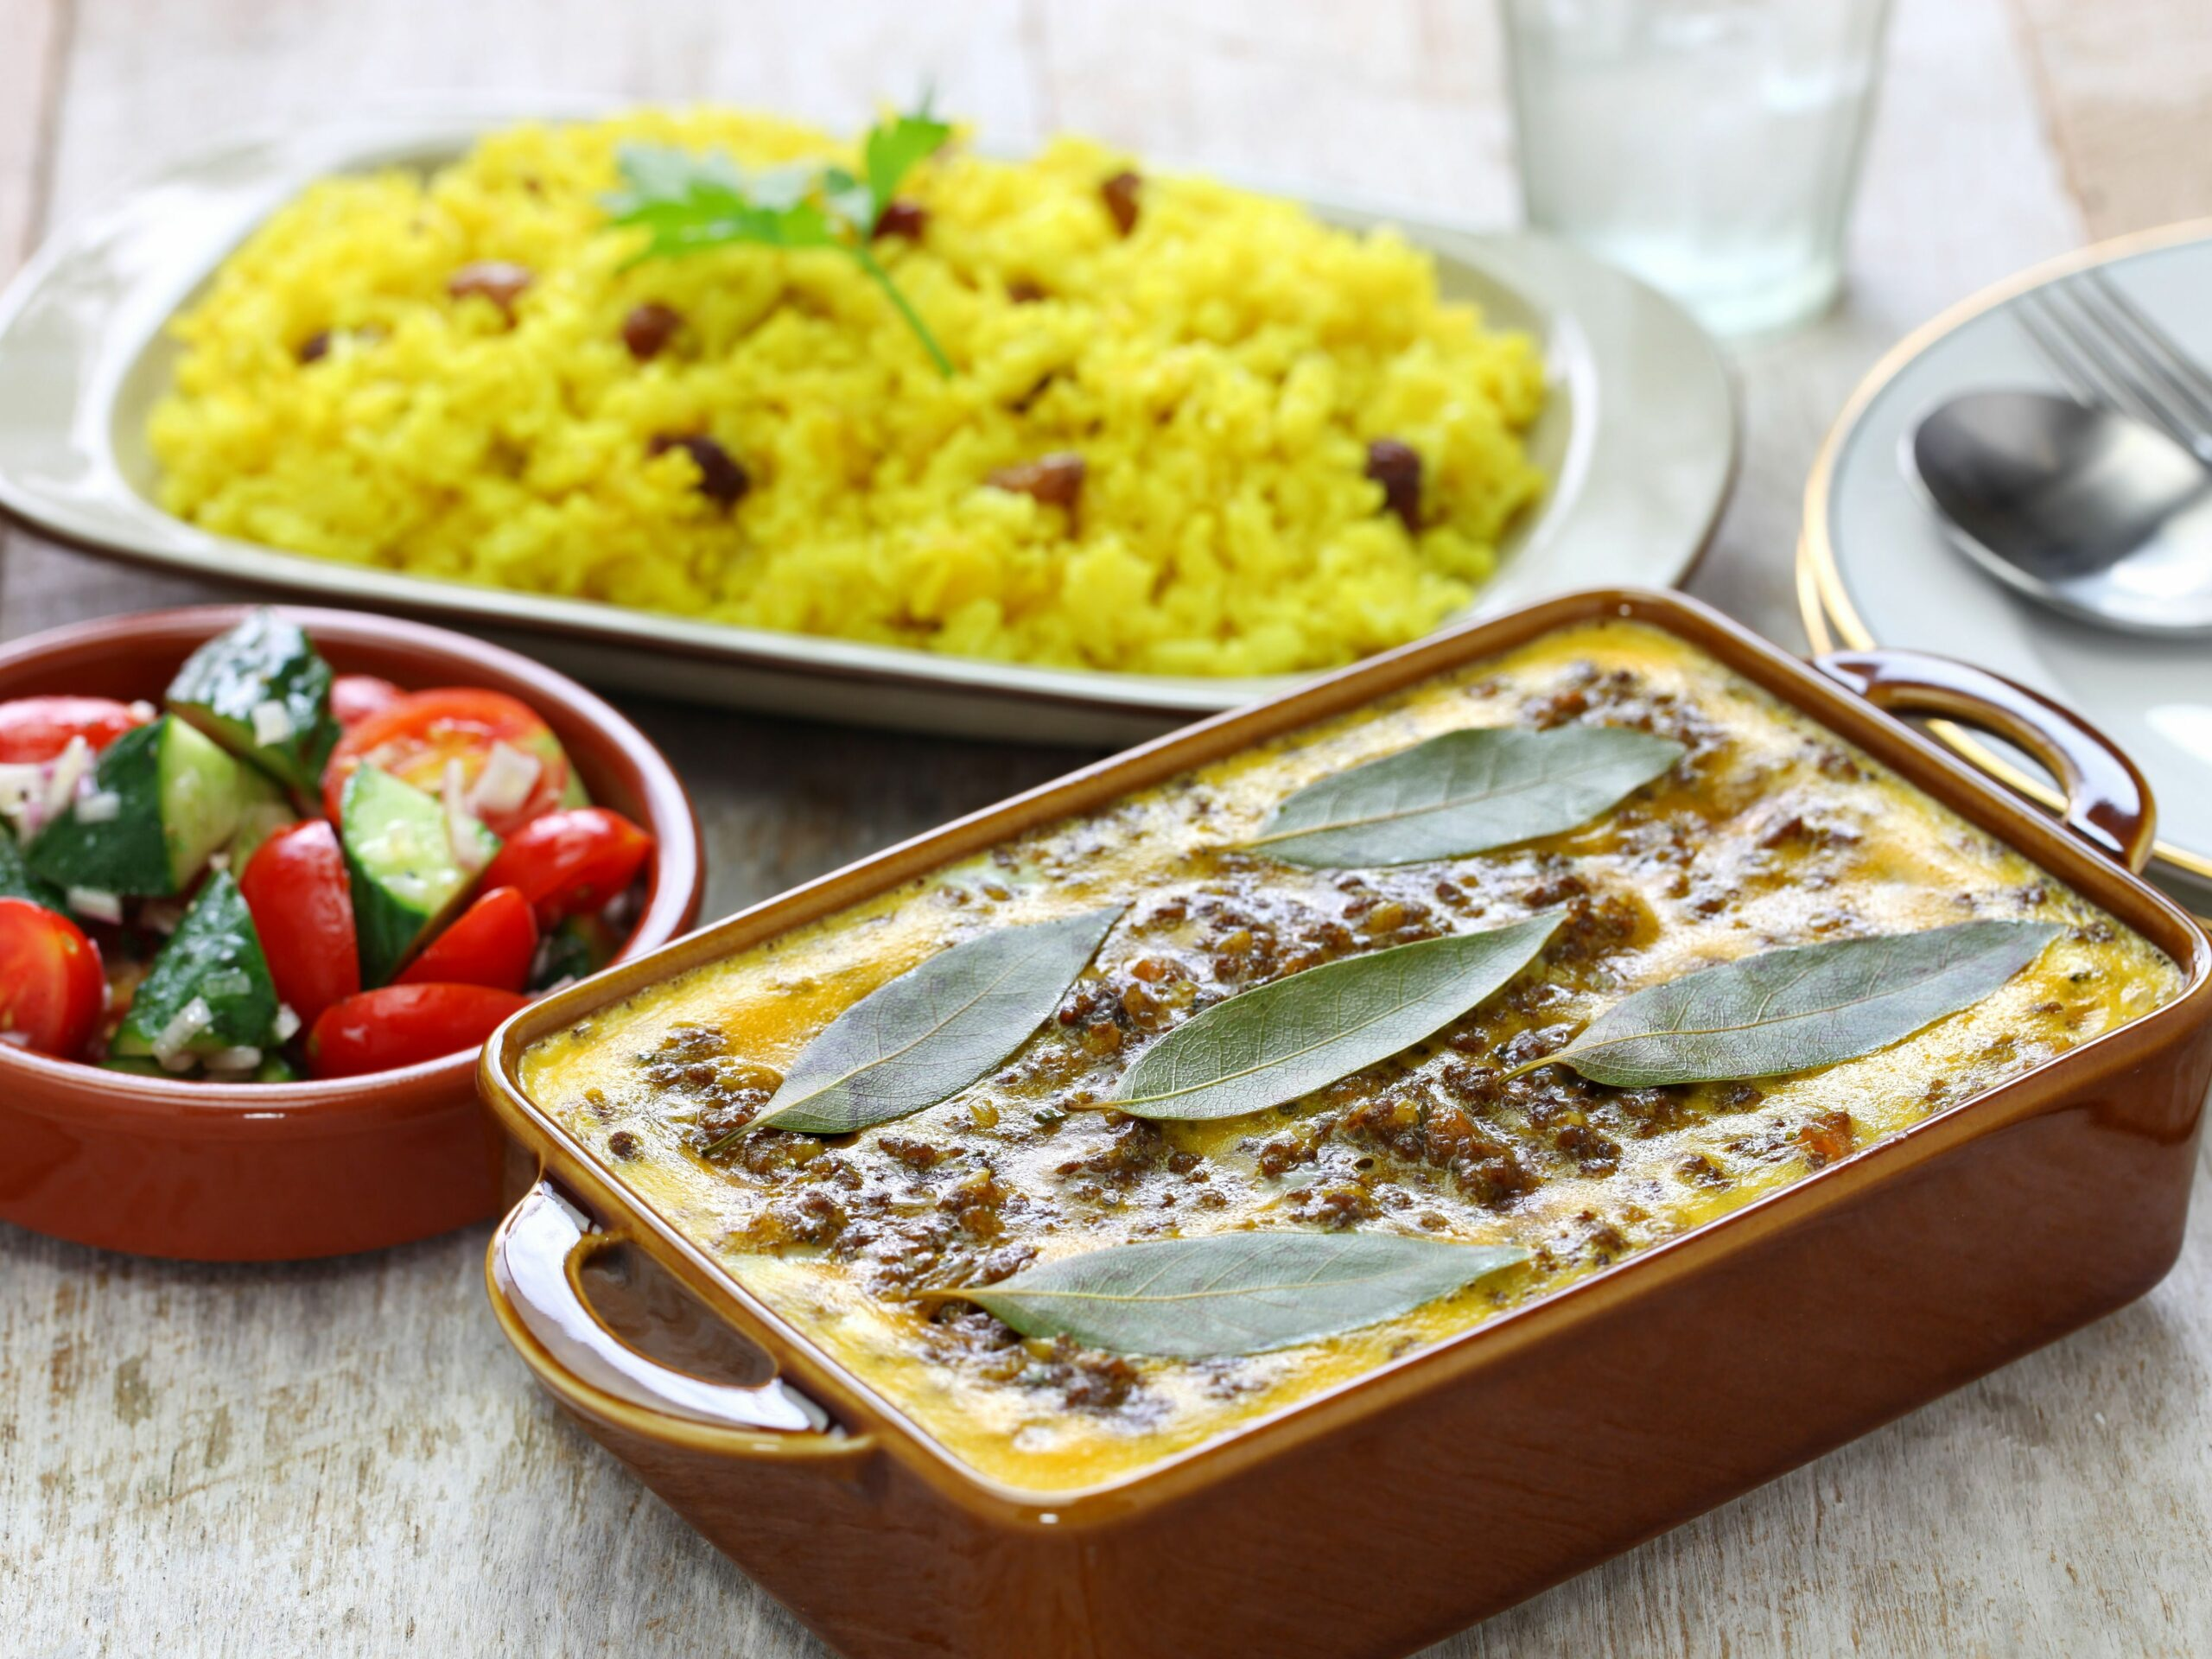 Top 9 South African Foods to Try - Easy Recipes South Africa